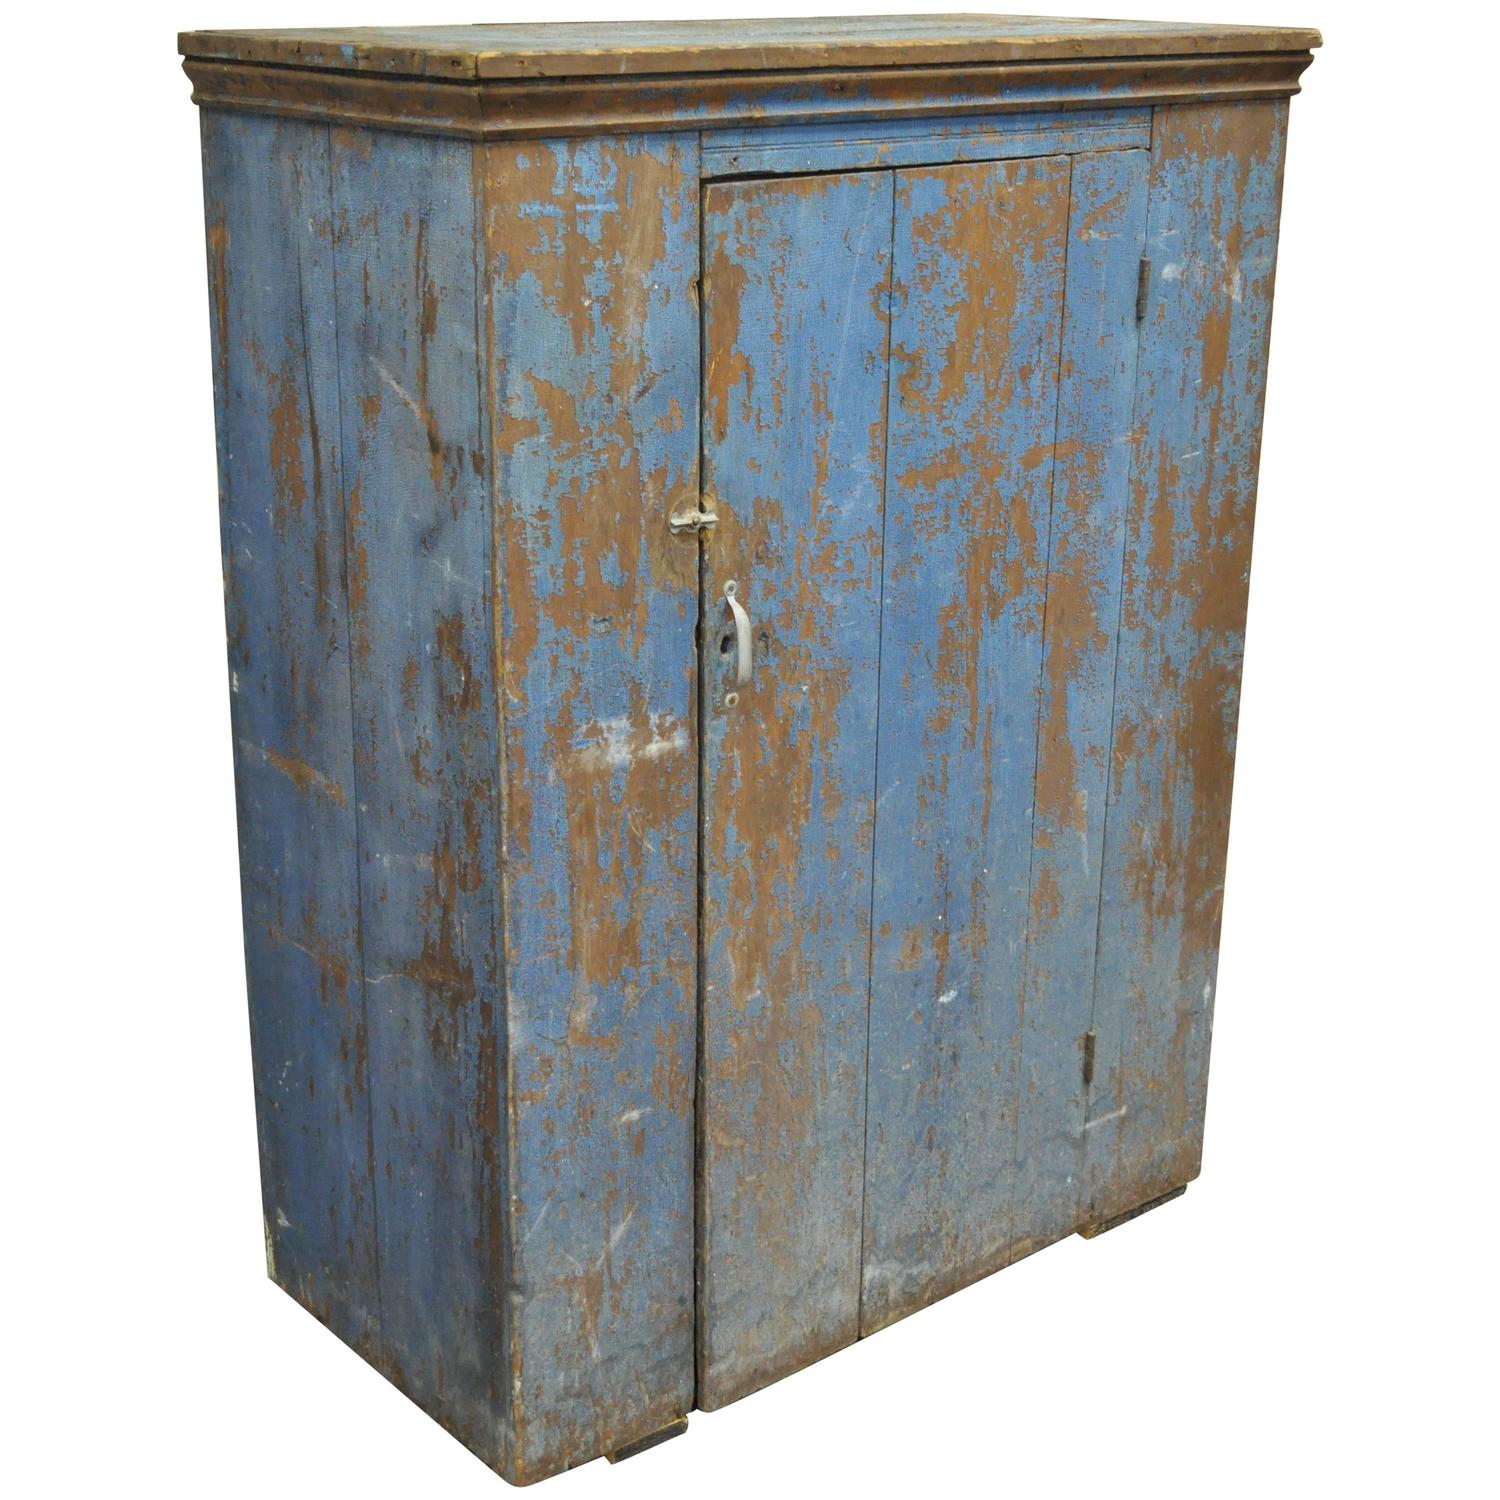 Antique Blue Distress Painted PA Rustic Primitive Jelly Cupboard Kitchen  Cabinet For Sale at 1stdibs - Antique Blue Distress Painted PA Rustic Primitive Jelly Cupboard